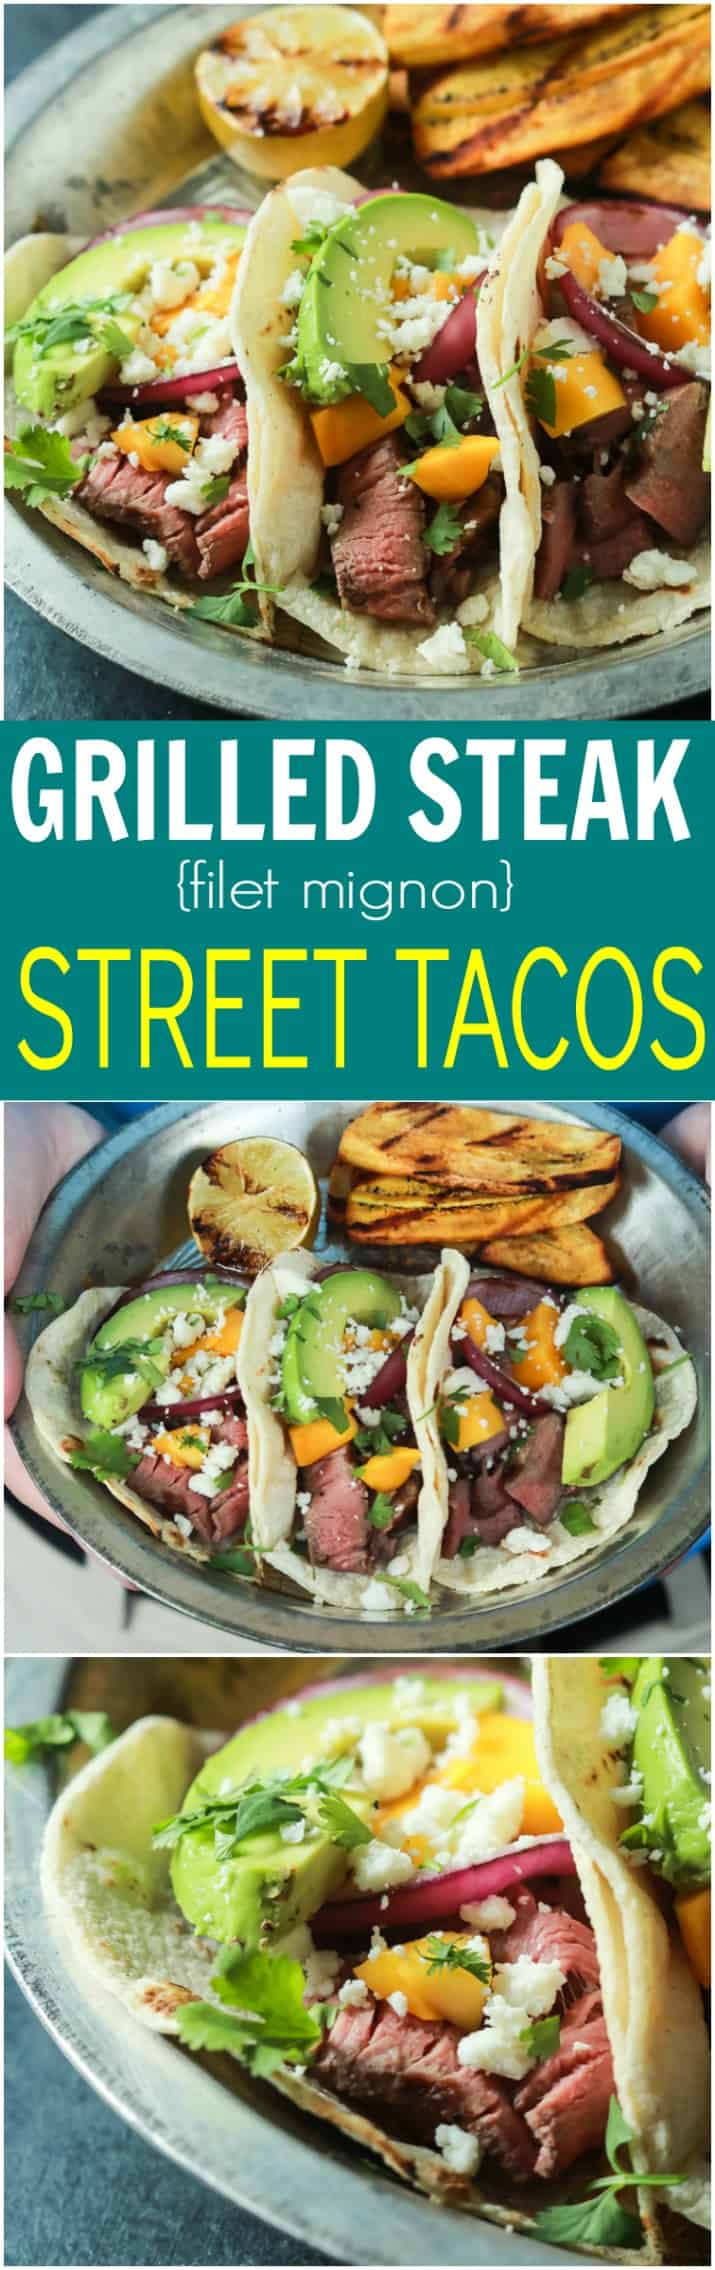 Grilled Steak Street Tacos Recipe